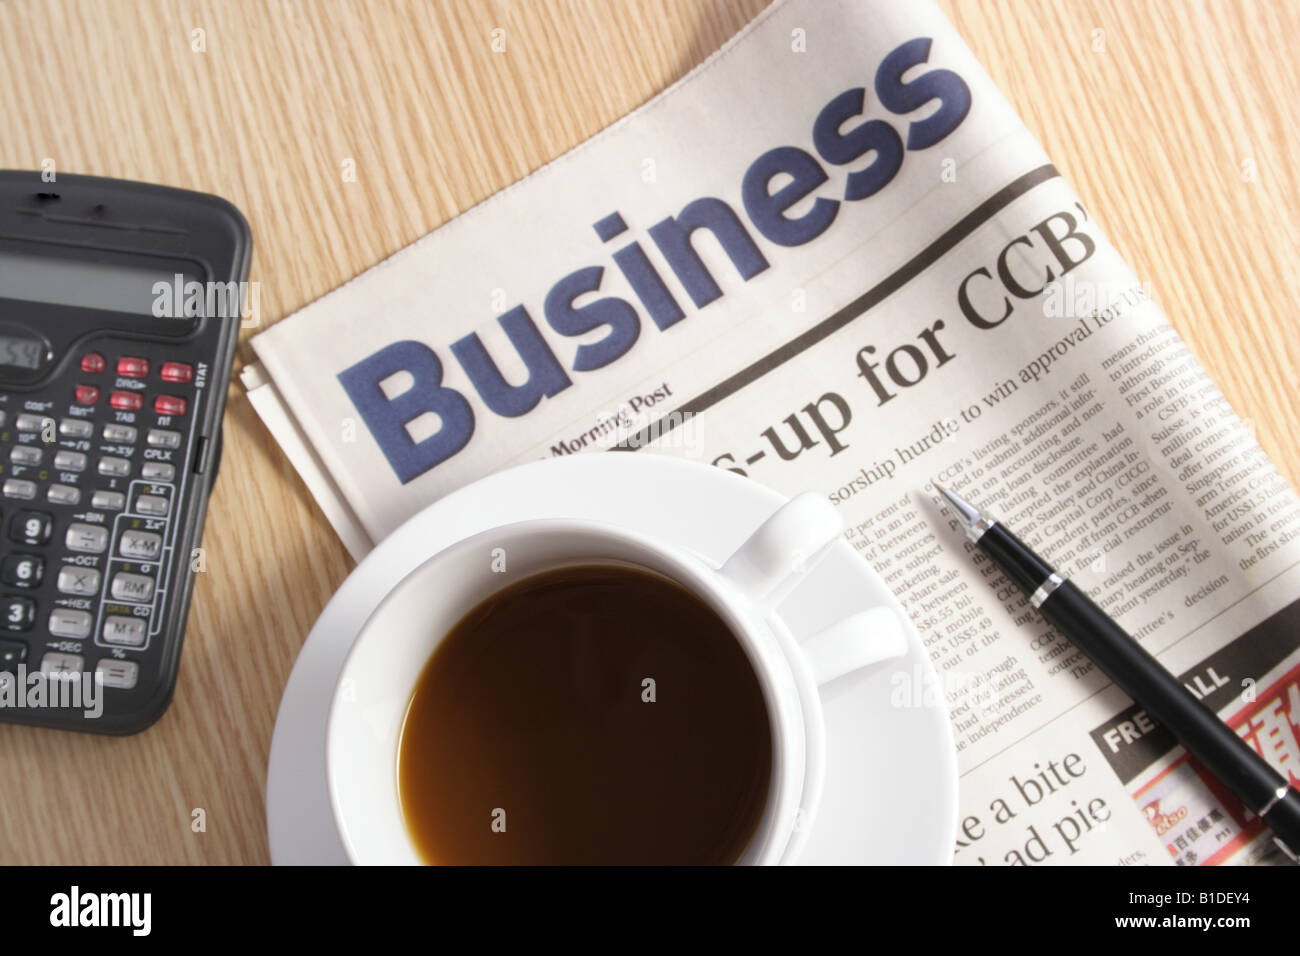 Coffee calculator pen and newspaper on table Stock Photo